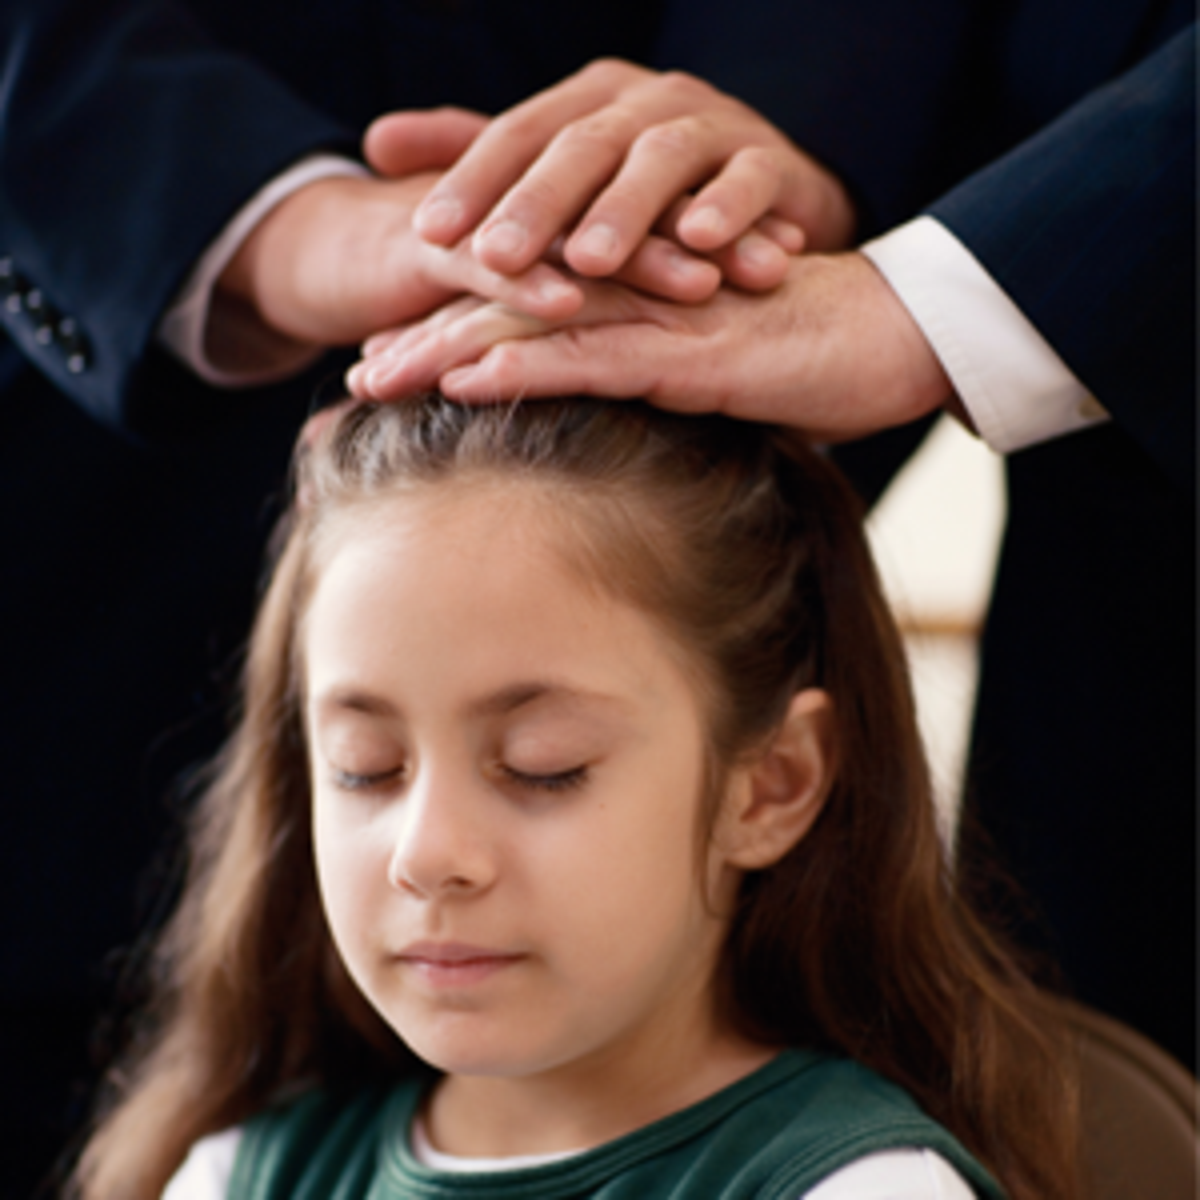 Young Girl being Confirmed a member of The Church of Jesus Christ of Latter-day Saints